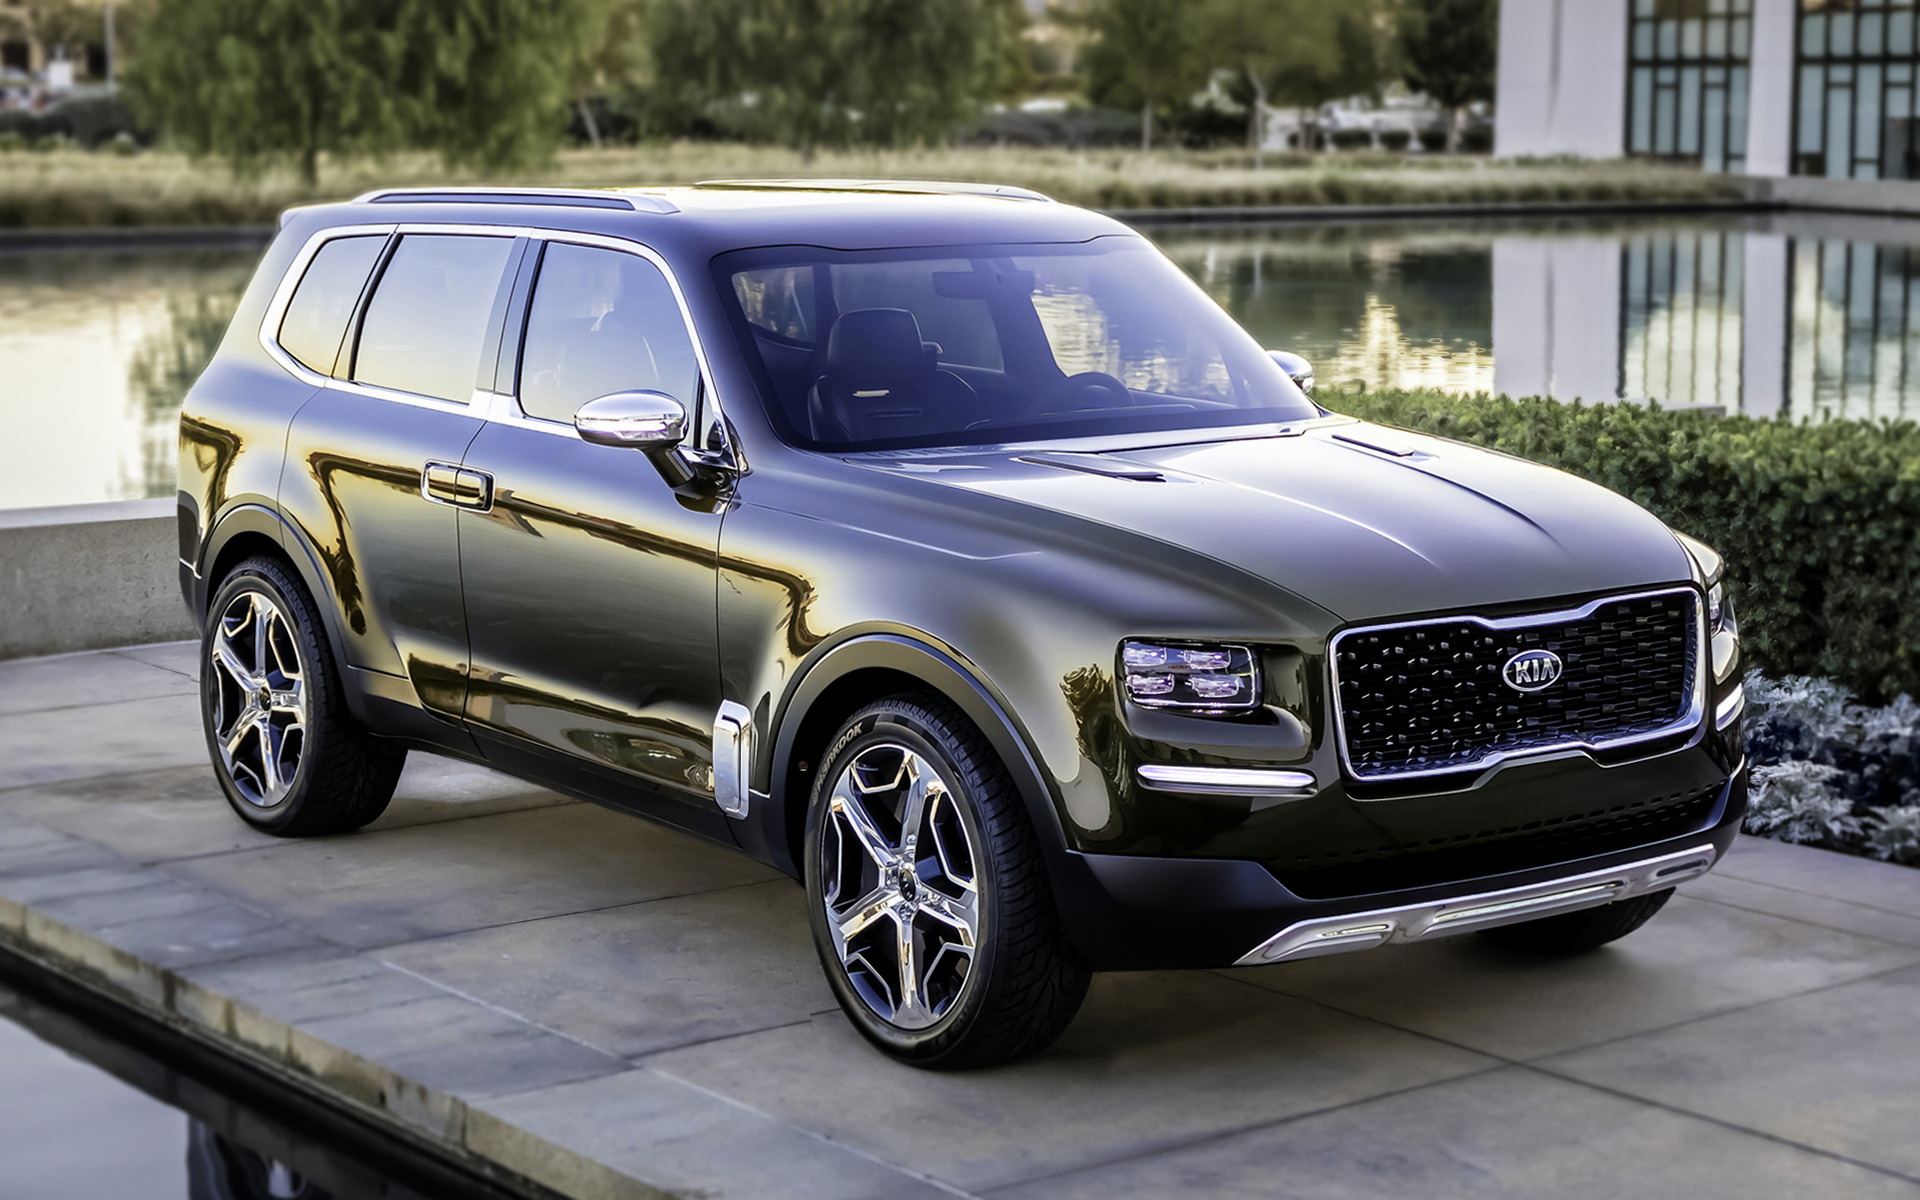 Kia Telluride Concept (2016) Wallpapers and HD Images ...